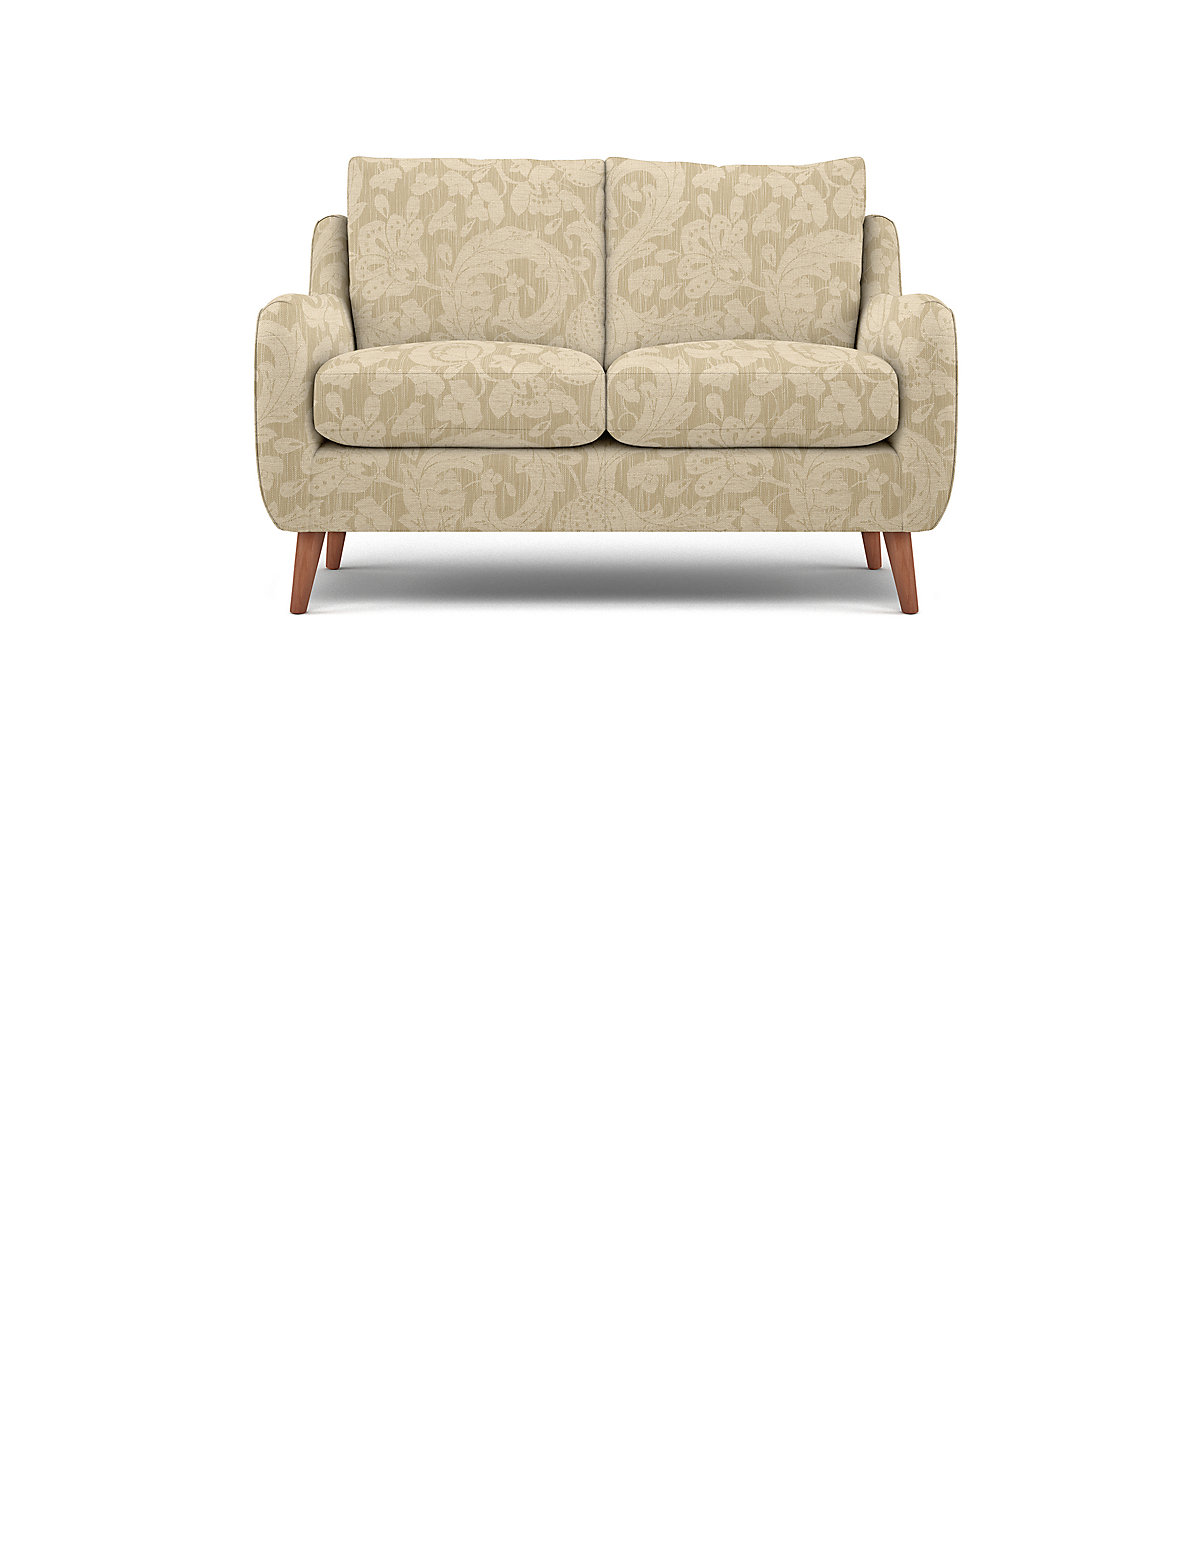 Marigold Small Sofa